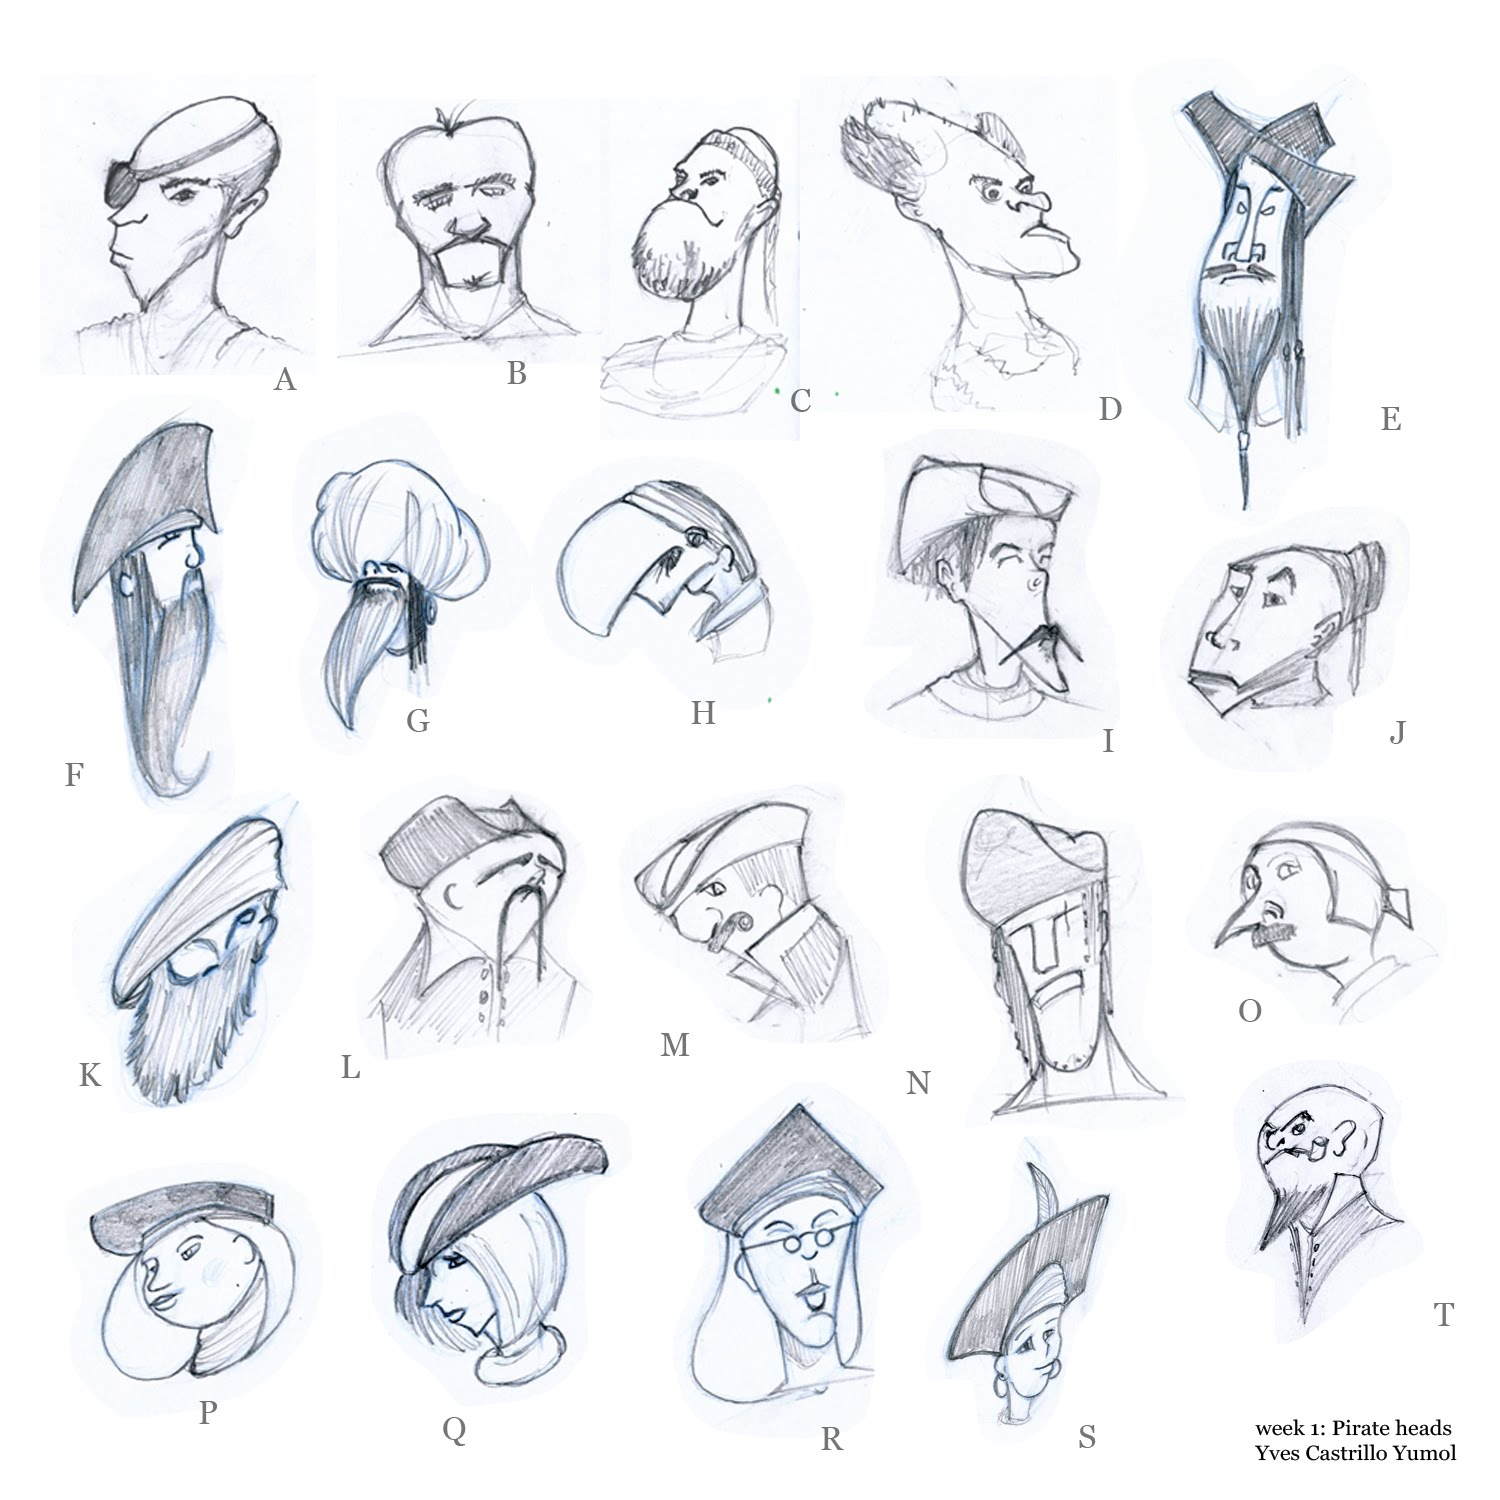 Character Design Where To Start : Yves yumol sketch cda start week intro to